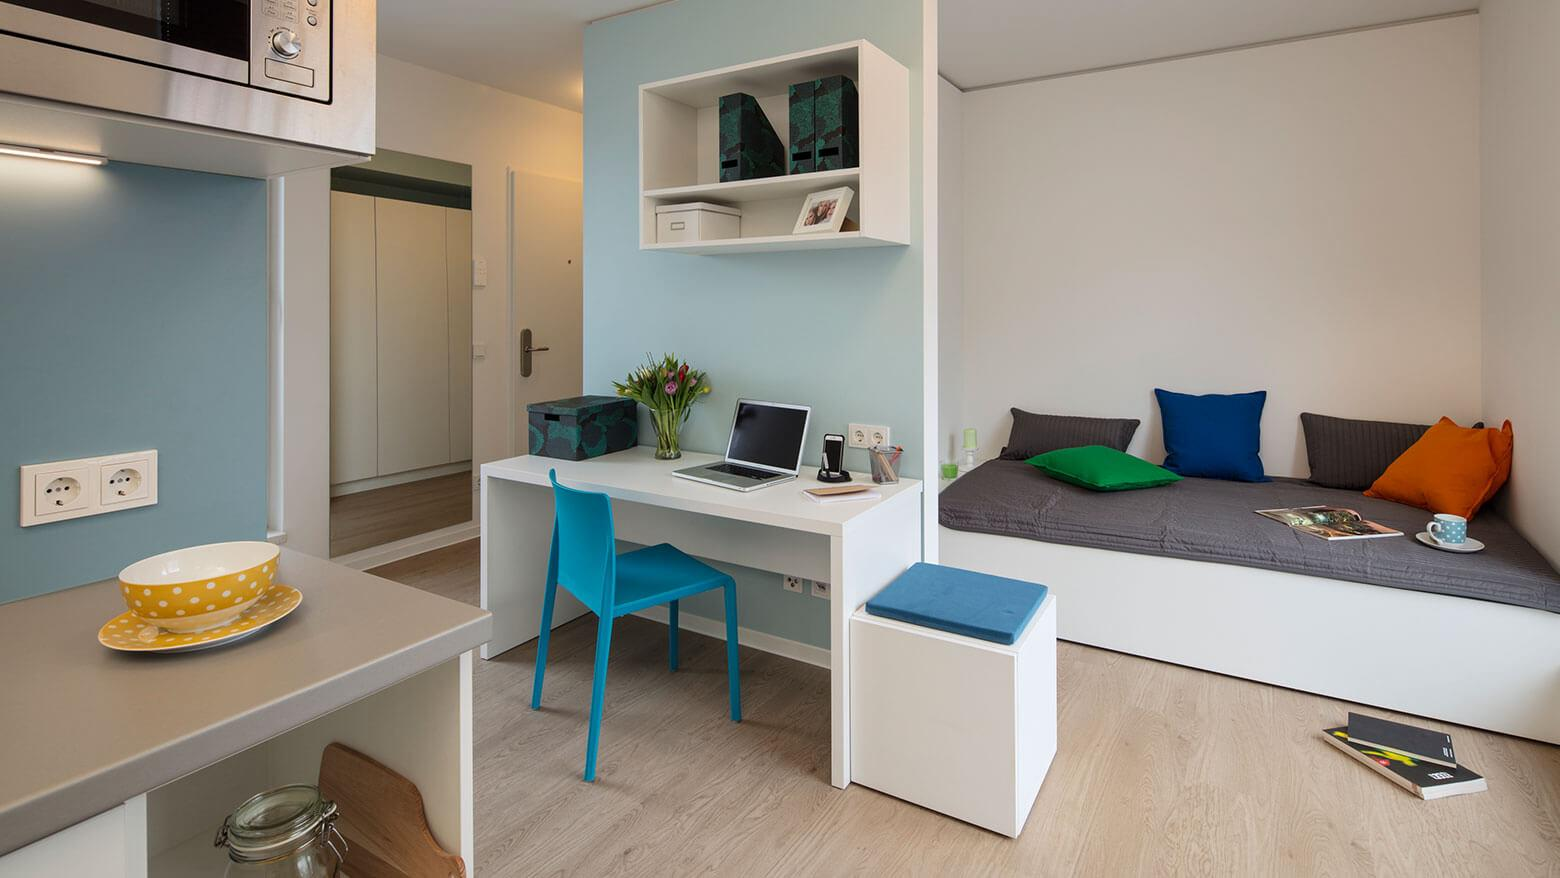 Stundentenapartment mit Küche im Quartillion Köln